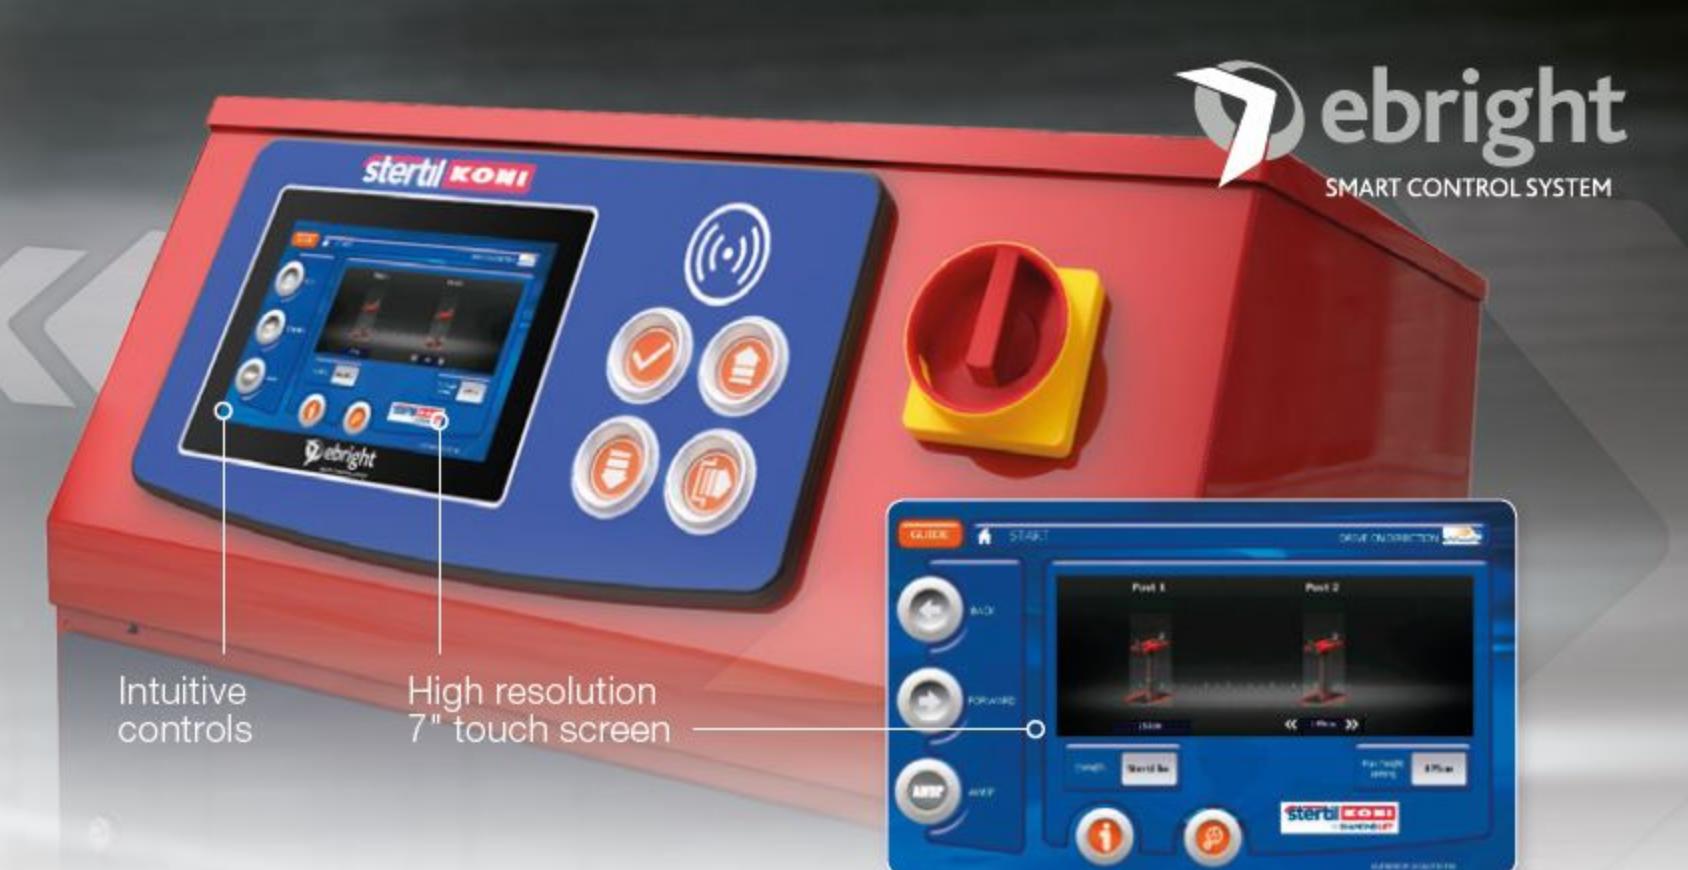 Heavy duty vehicle lift leader Stertil-Koni has incorporated its advanced, full-color, touch-screen control console, known as the ebright Smart Control System, into the company's popular, state-of-the-art high-pressure in-ground telescopic piston lifting system – the DIAMONDLIFT.